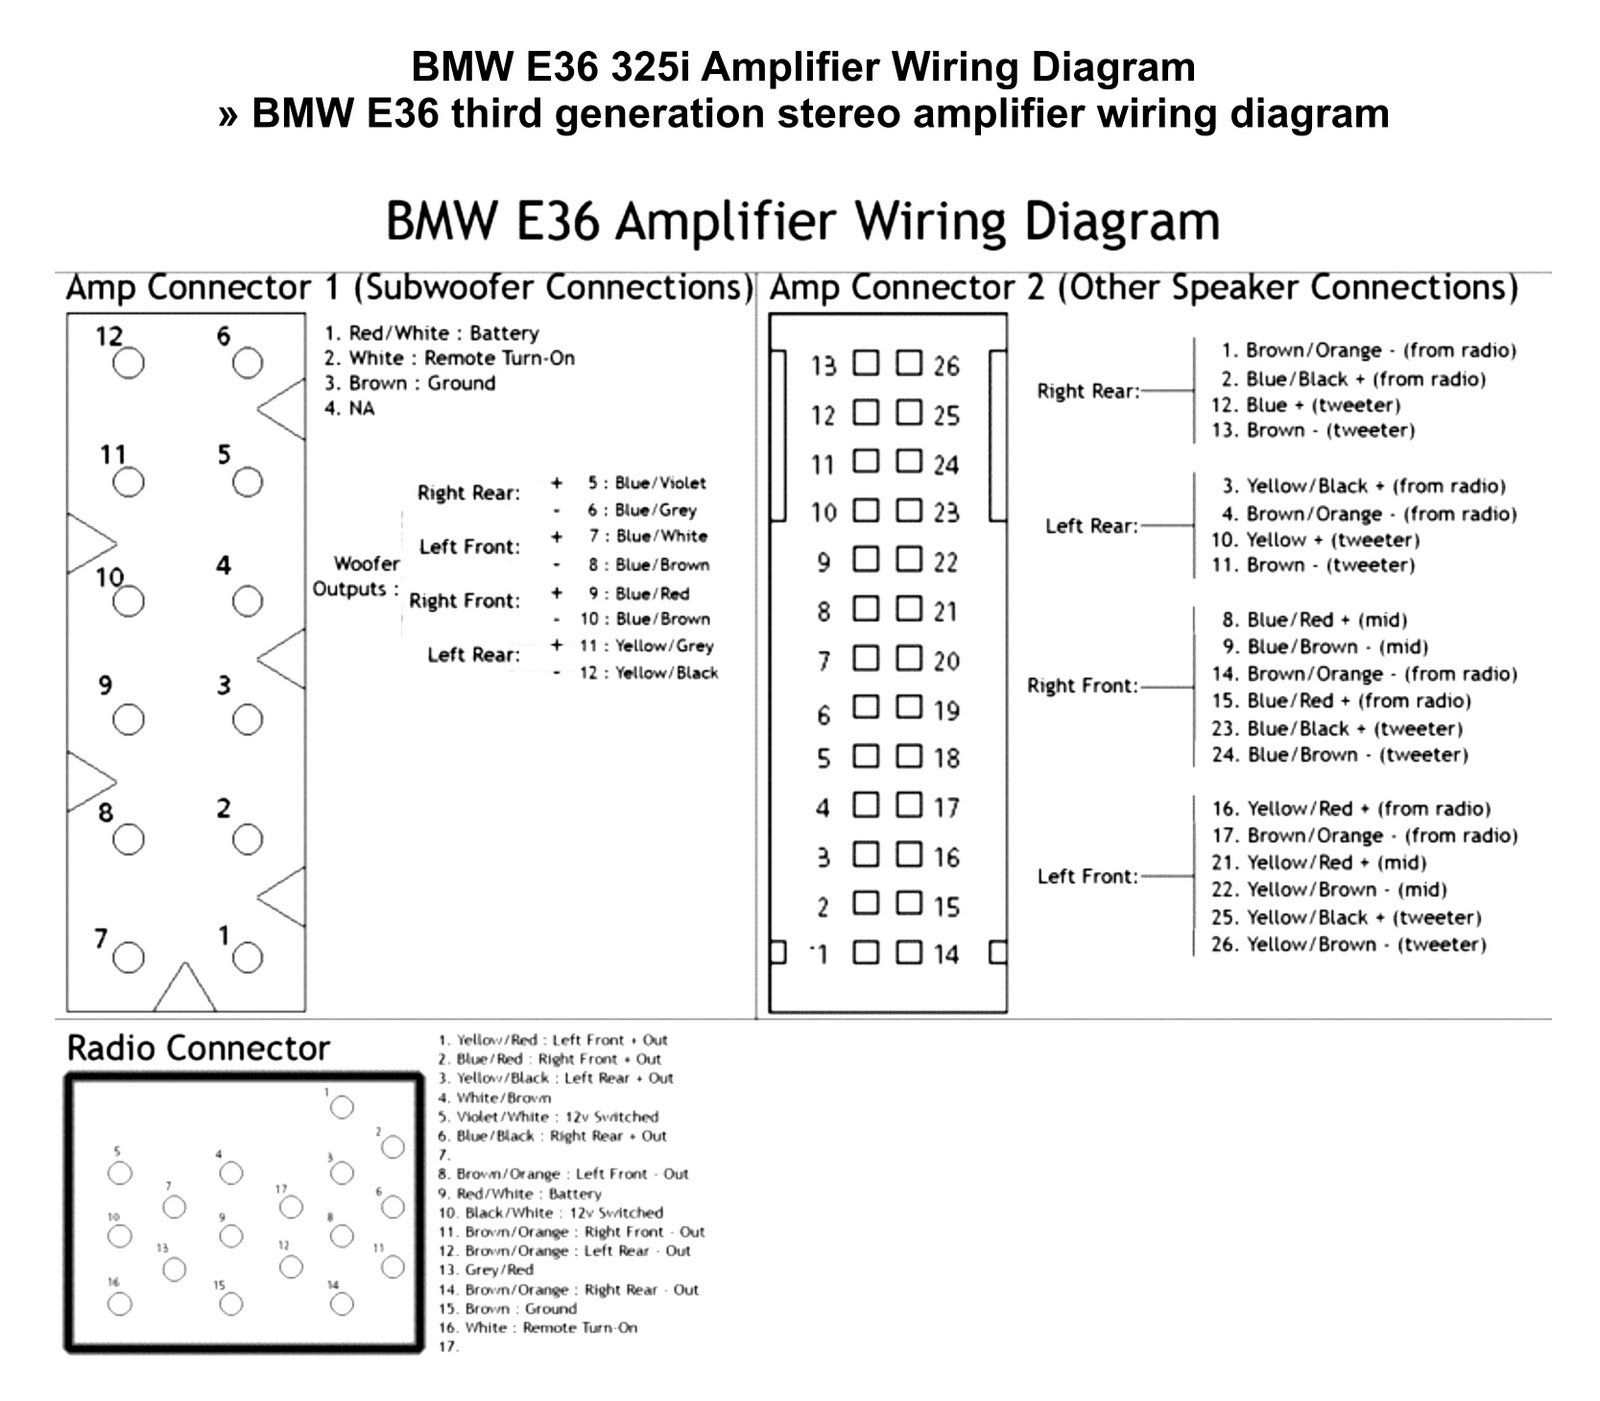 Pin by Ryanben on Diagram Template Bmw, Diagram, New bmw